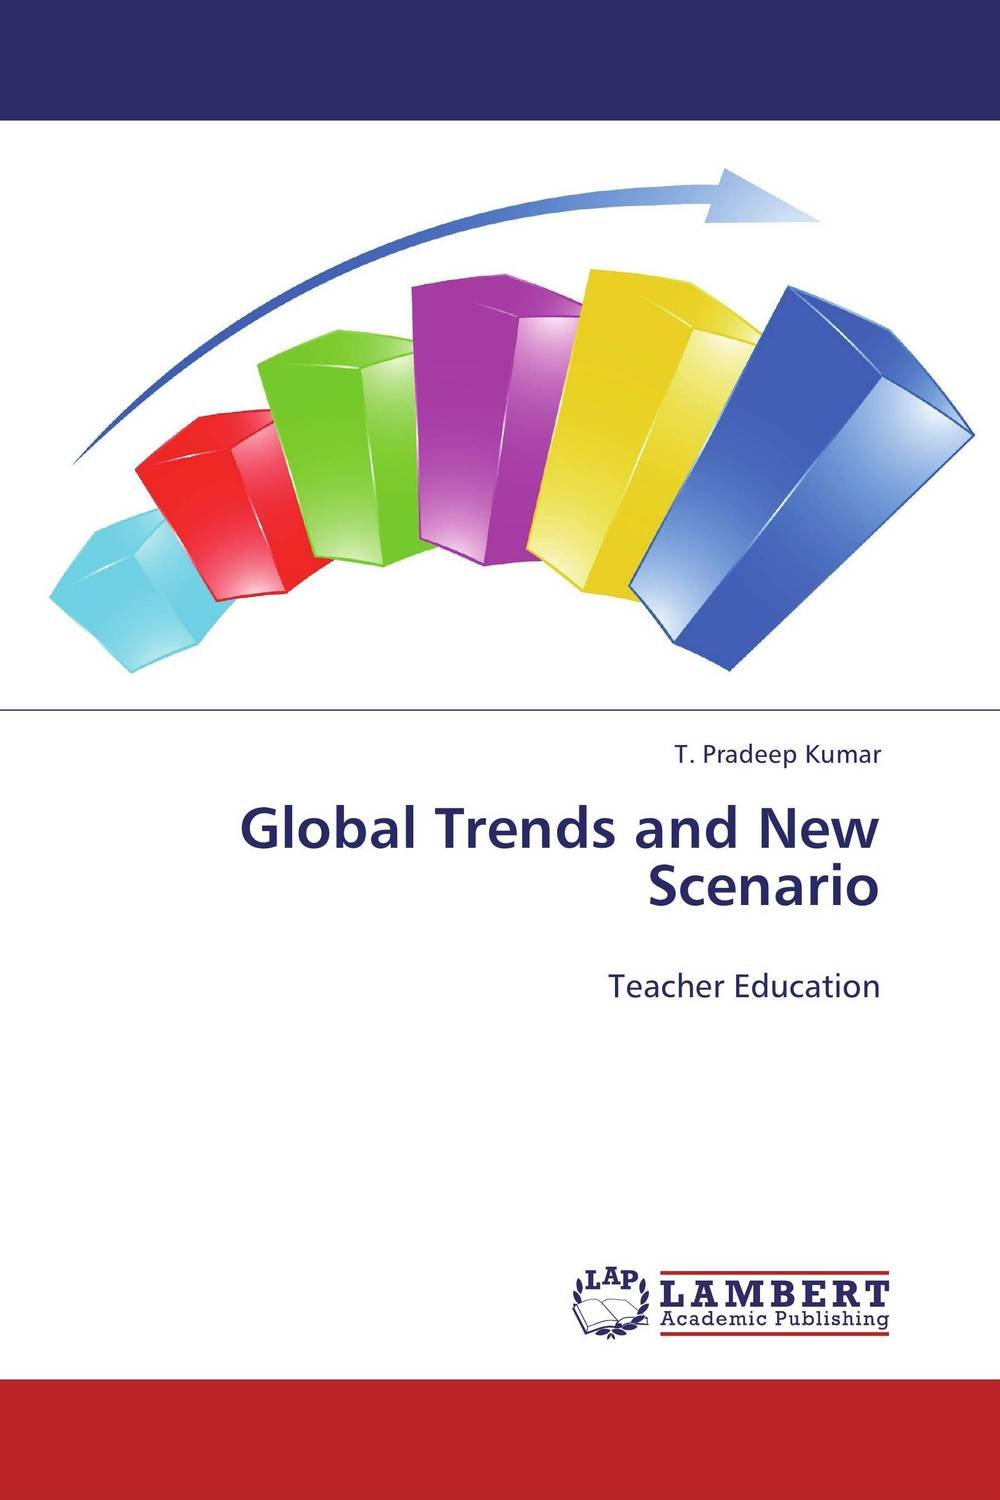 Global Trends and New Scenario shaun rein the end of cheap china revised and updated economic and cultural trends that will disrupt the world